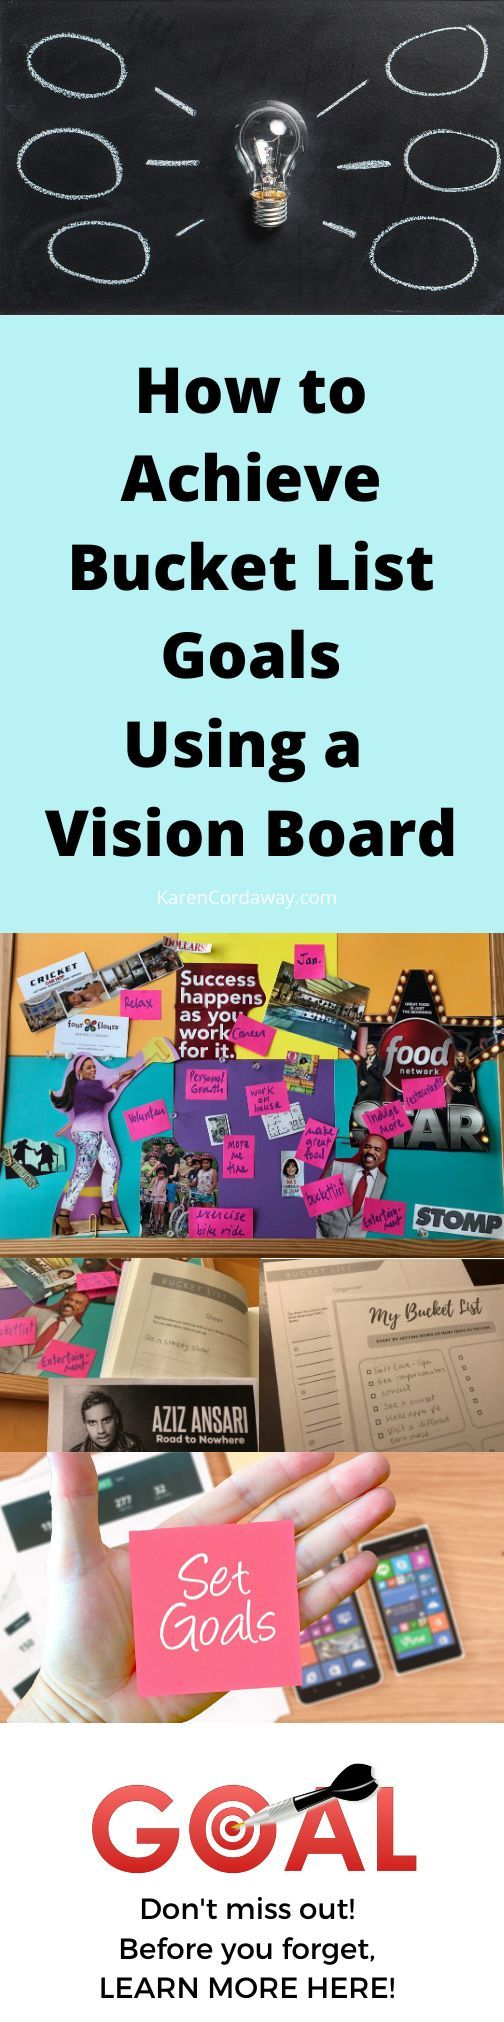 How to Achieve Goals Using a Vision Board (DIY)